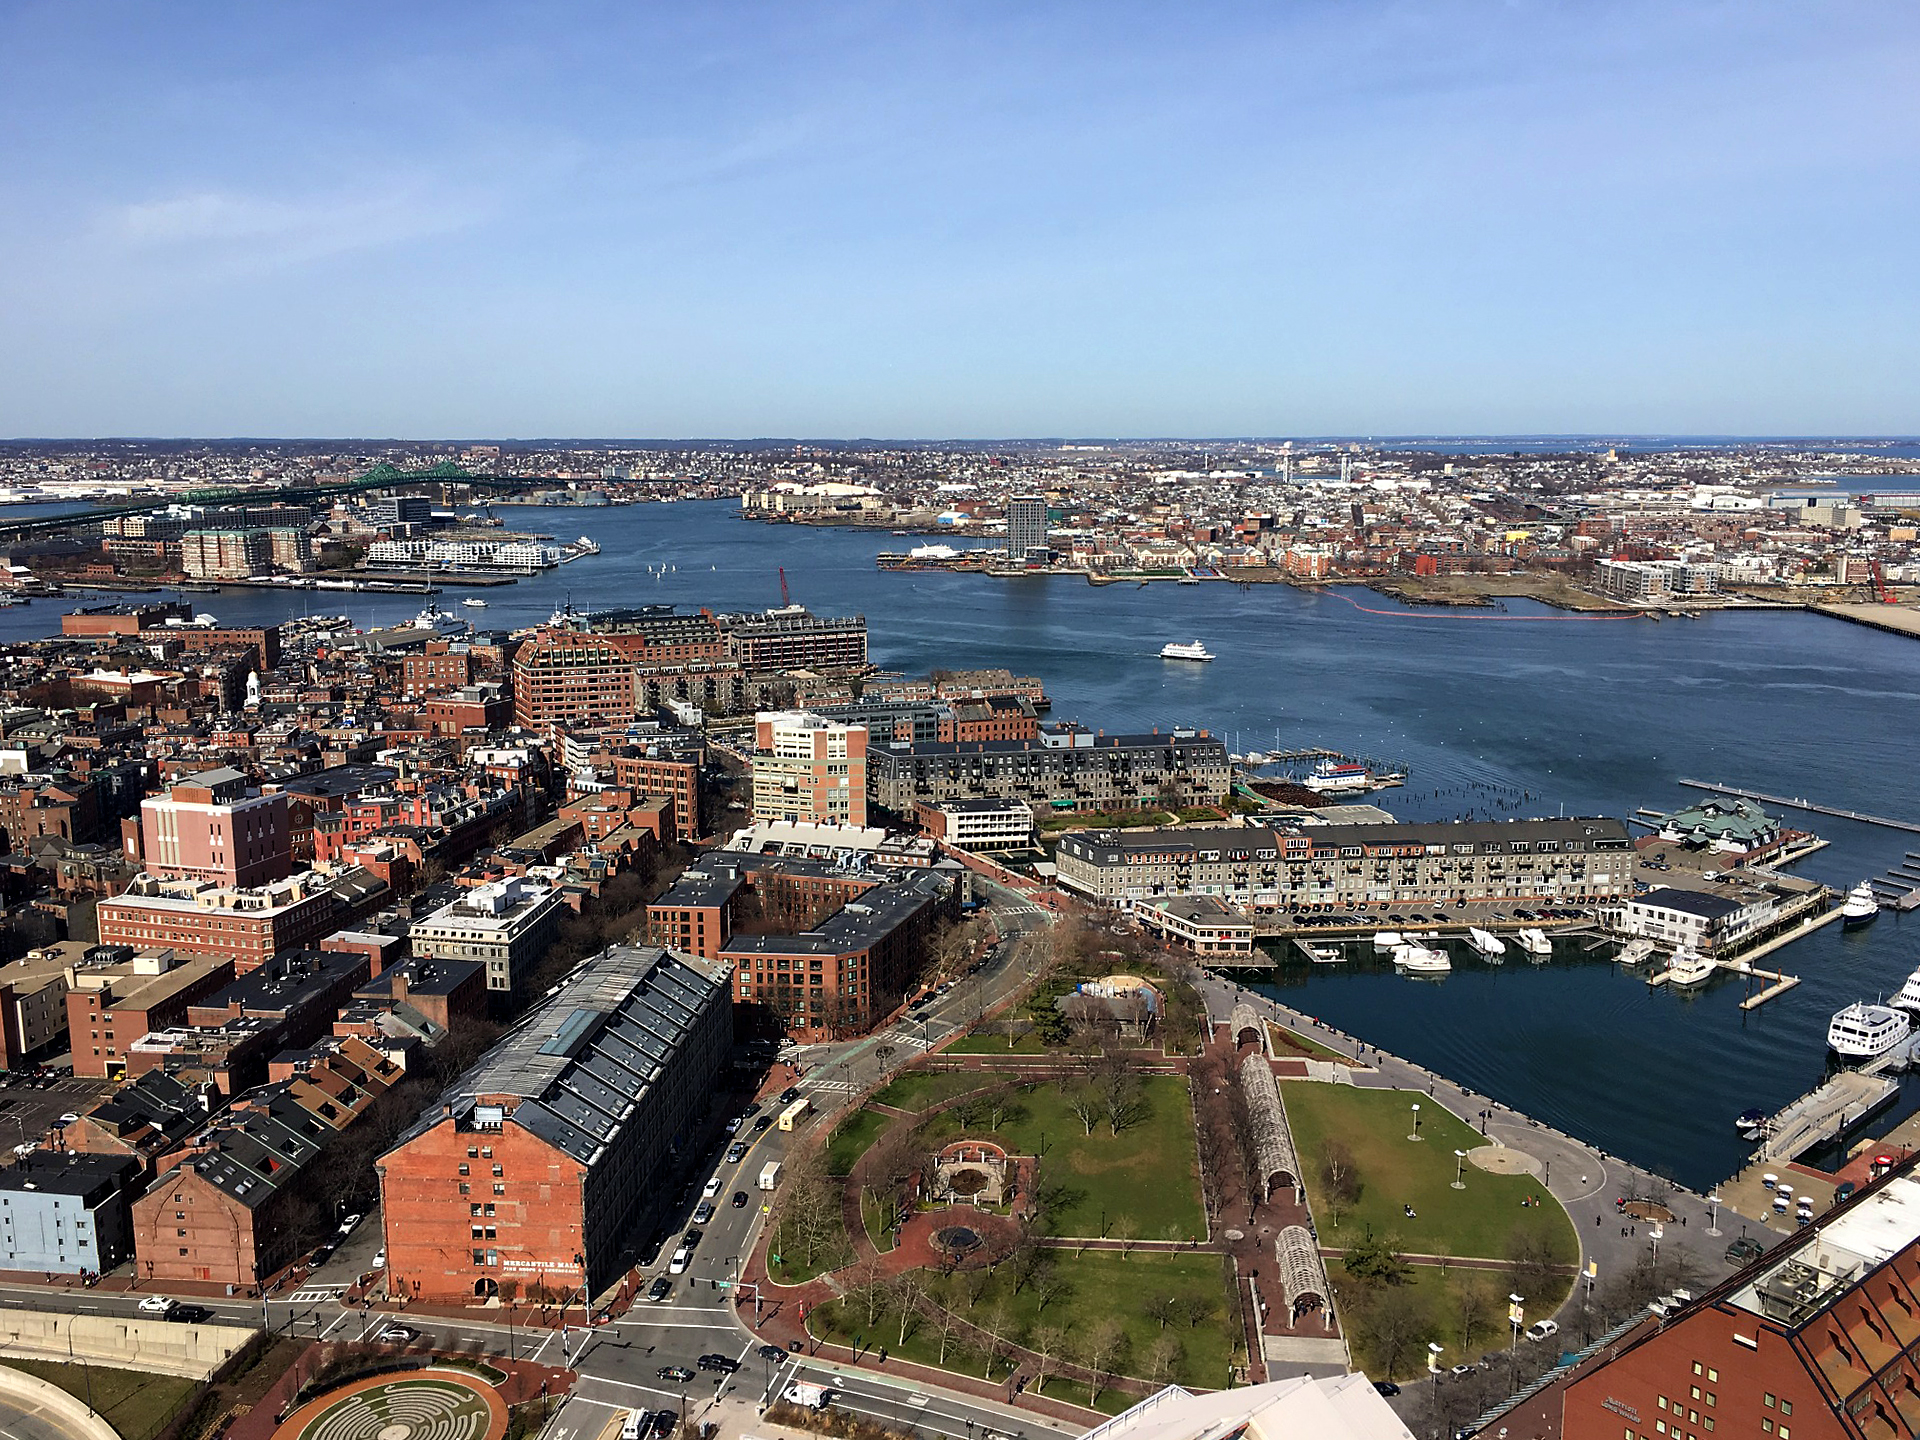 Recent view of Christopher Columbus Park from Custom House Tower, shows how some of the same Boston wharves and East Boston waterfront from the above early 20th-century photo look today. (NewtonCourt / wikimedia)